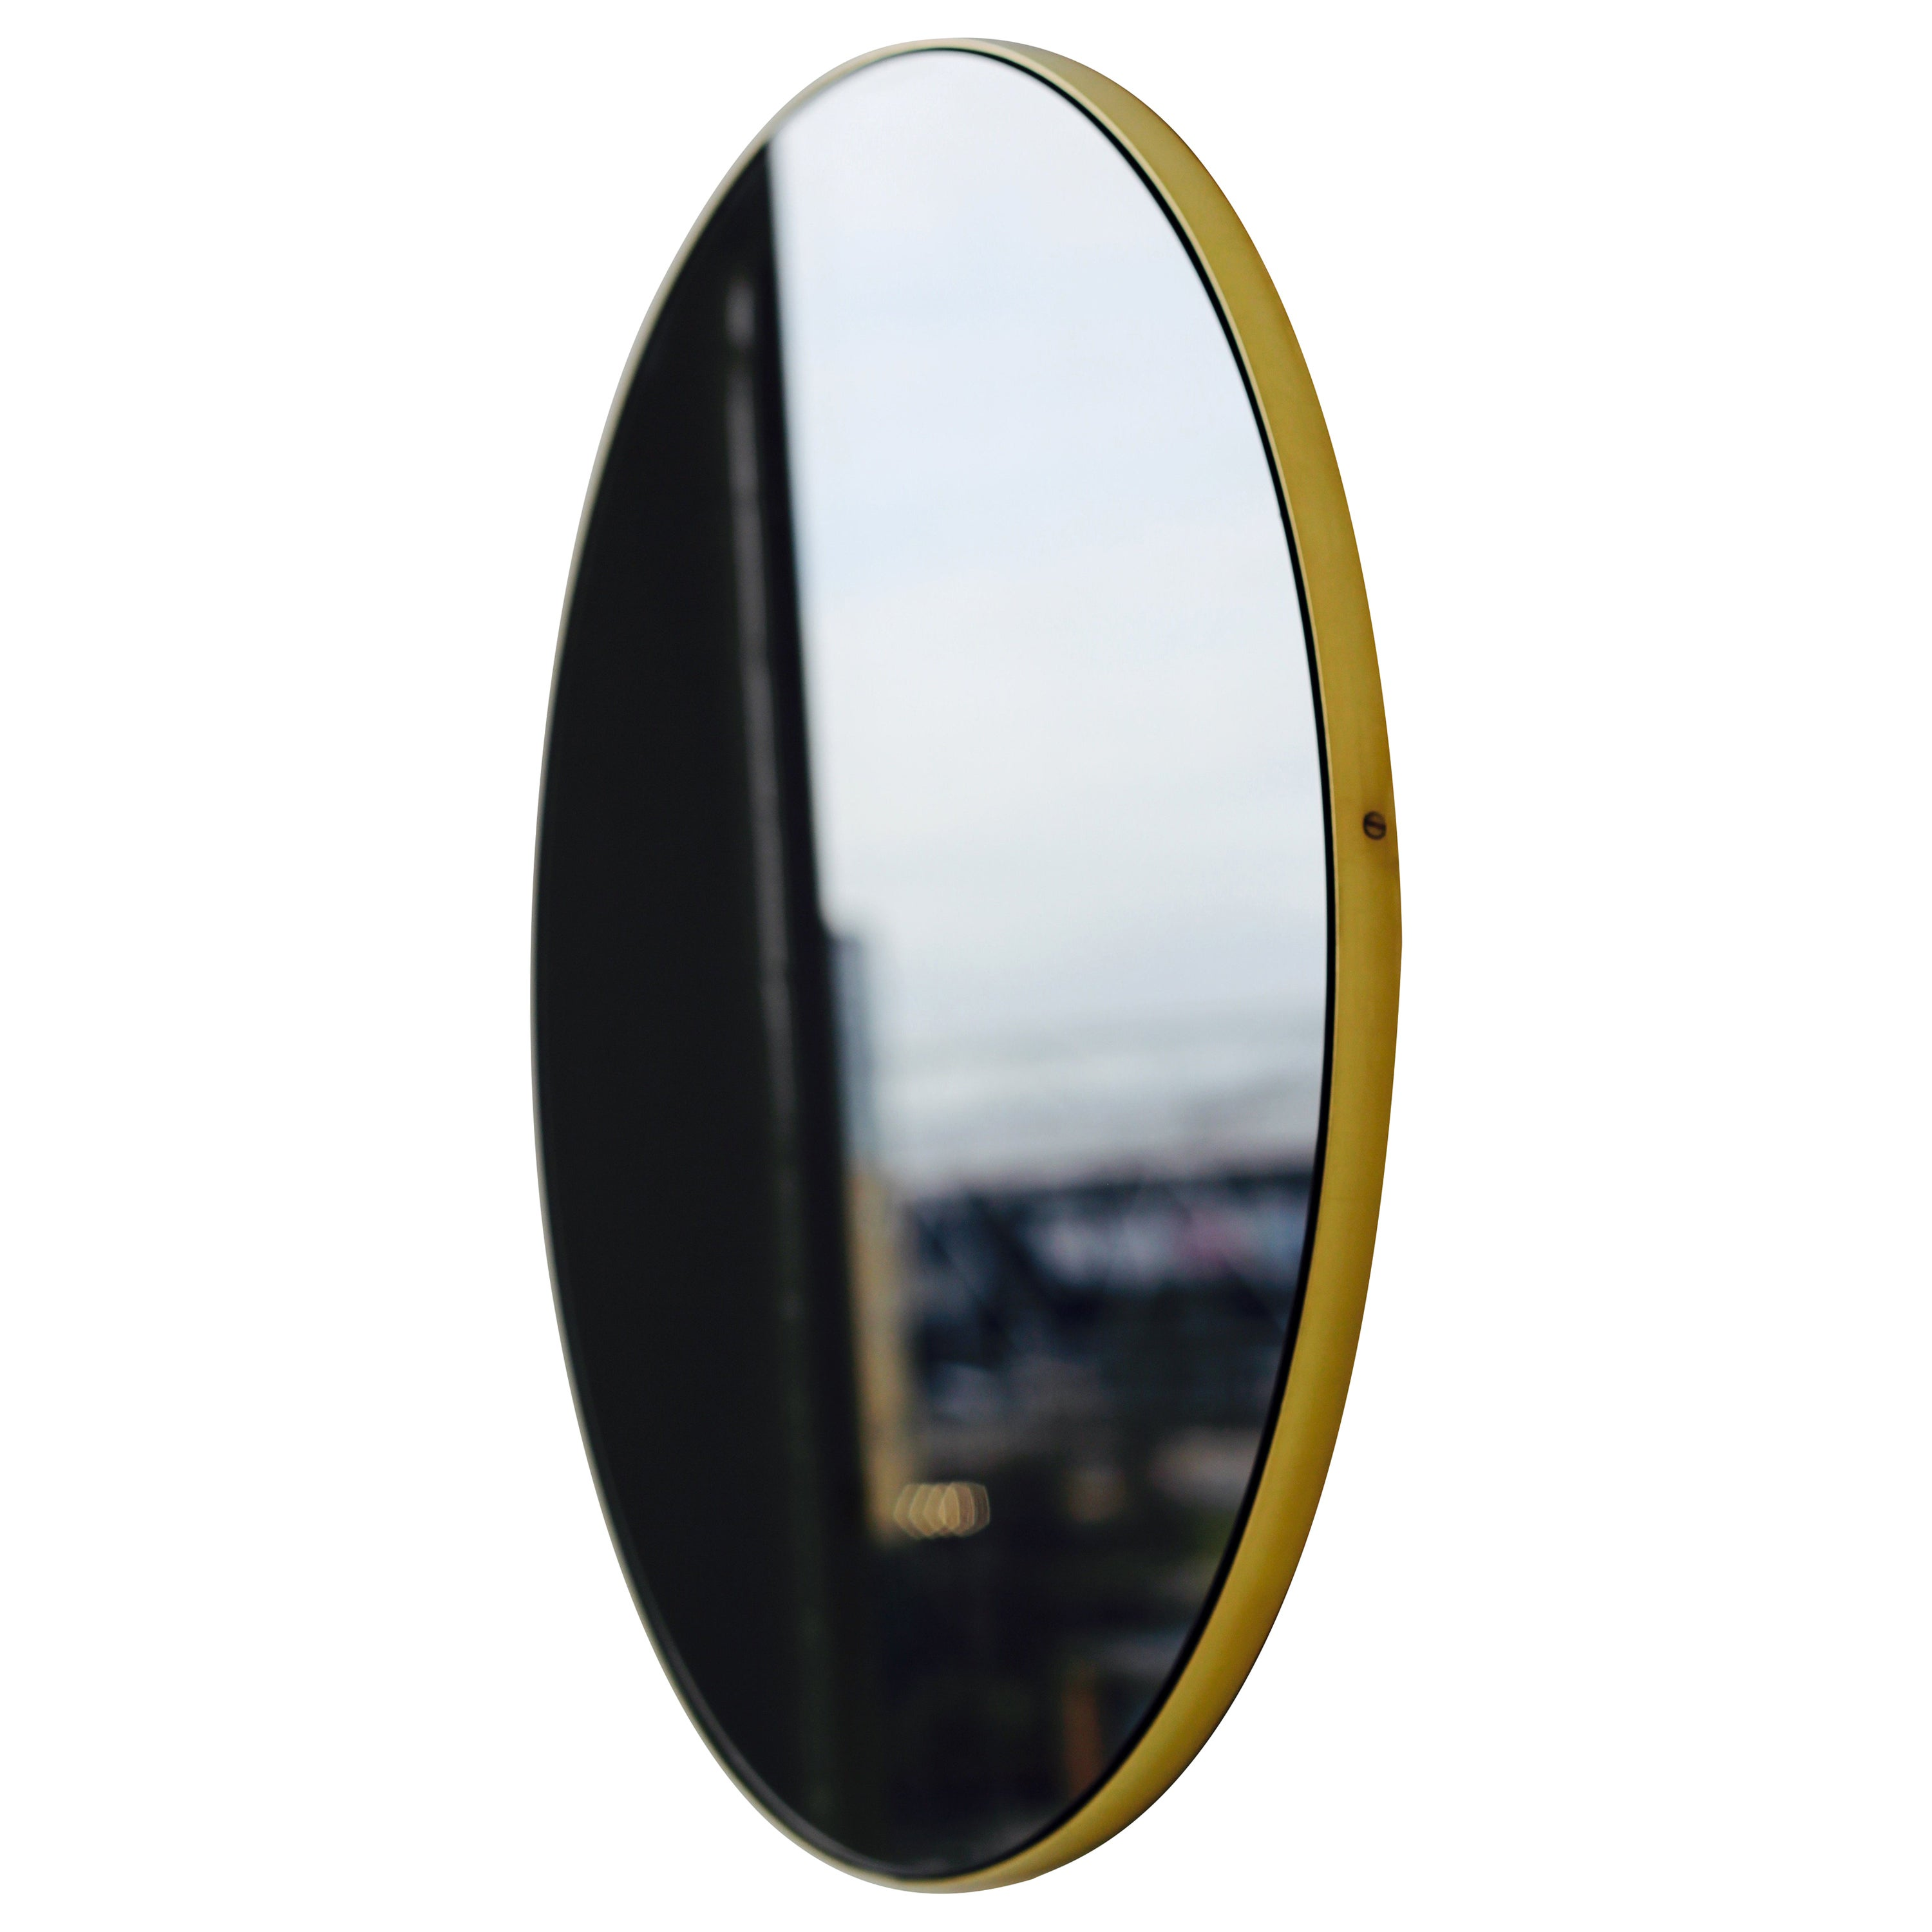 Orbis™ Black Tinted Round Contemporary Mirror with a Brass Frame - Extra-Large